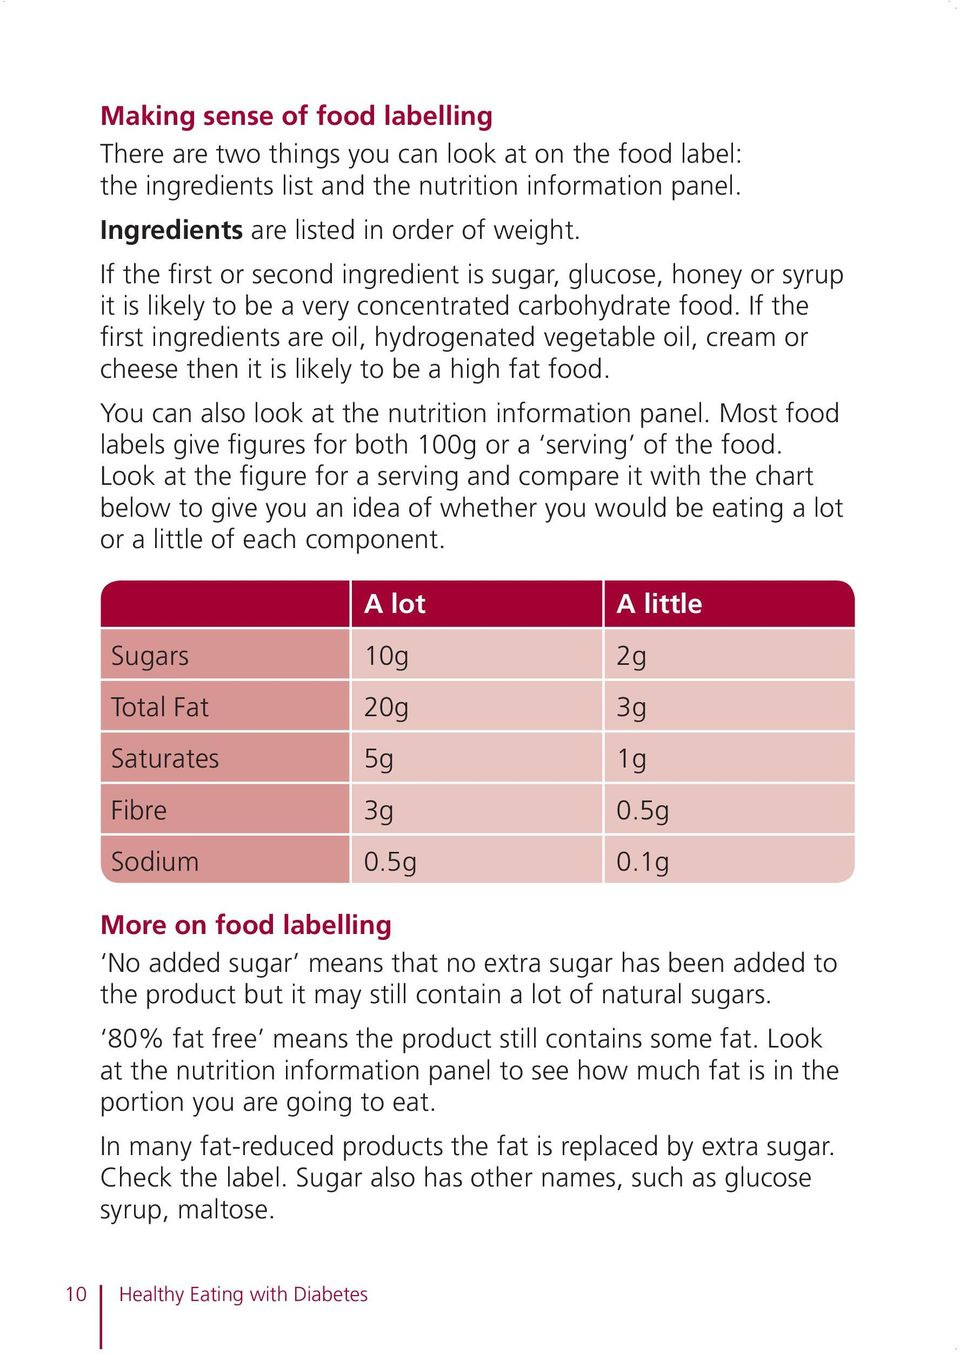 If the first ingredients are oil, hydrogenated vegetable oil, cream or cheese then it is likely to be a high fat food. You can also look at the nutrition information panel.